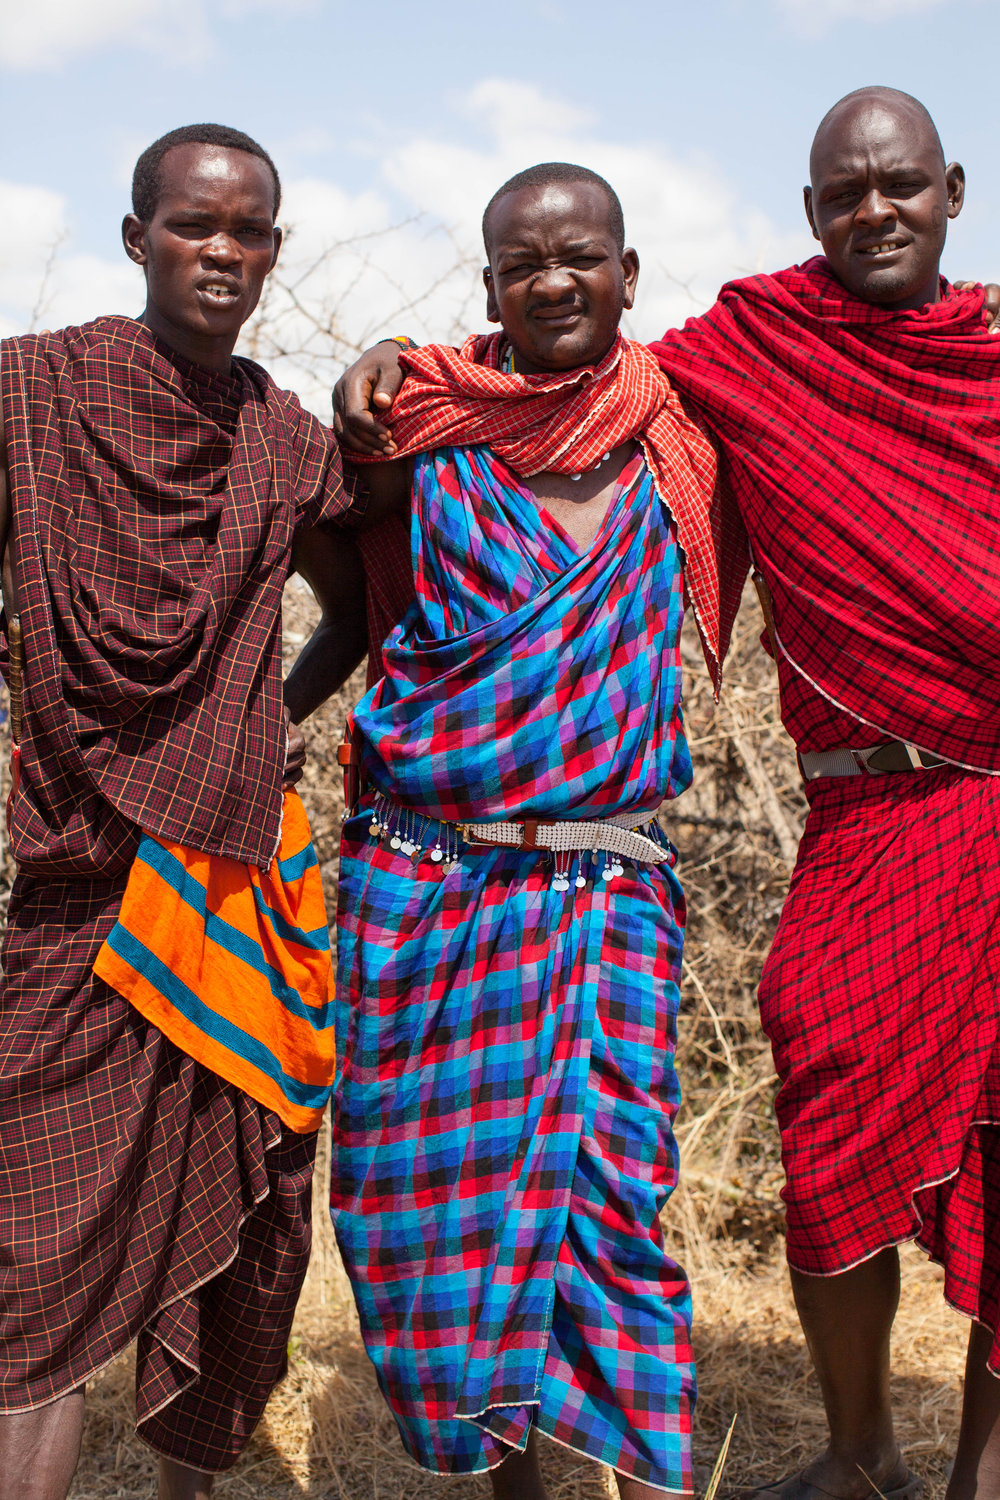 Maasai men in colorful woven fabrics at their home in the open bush in Tanzania, Africa.